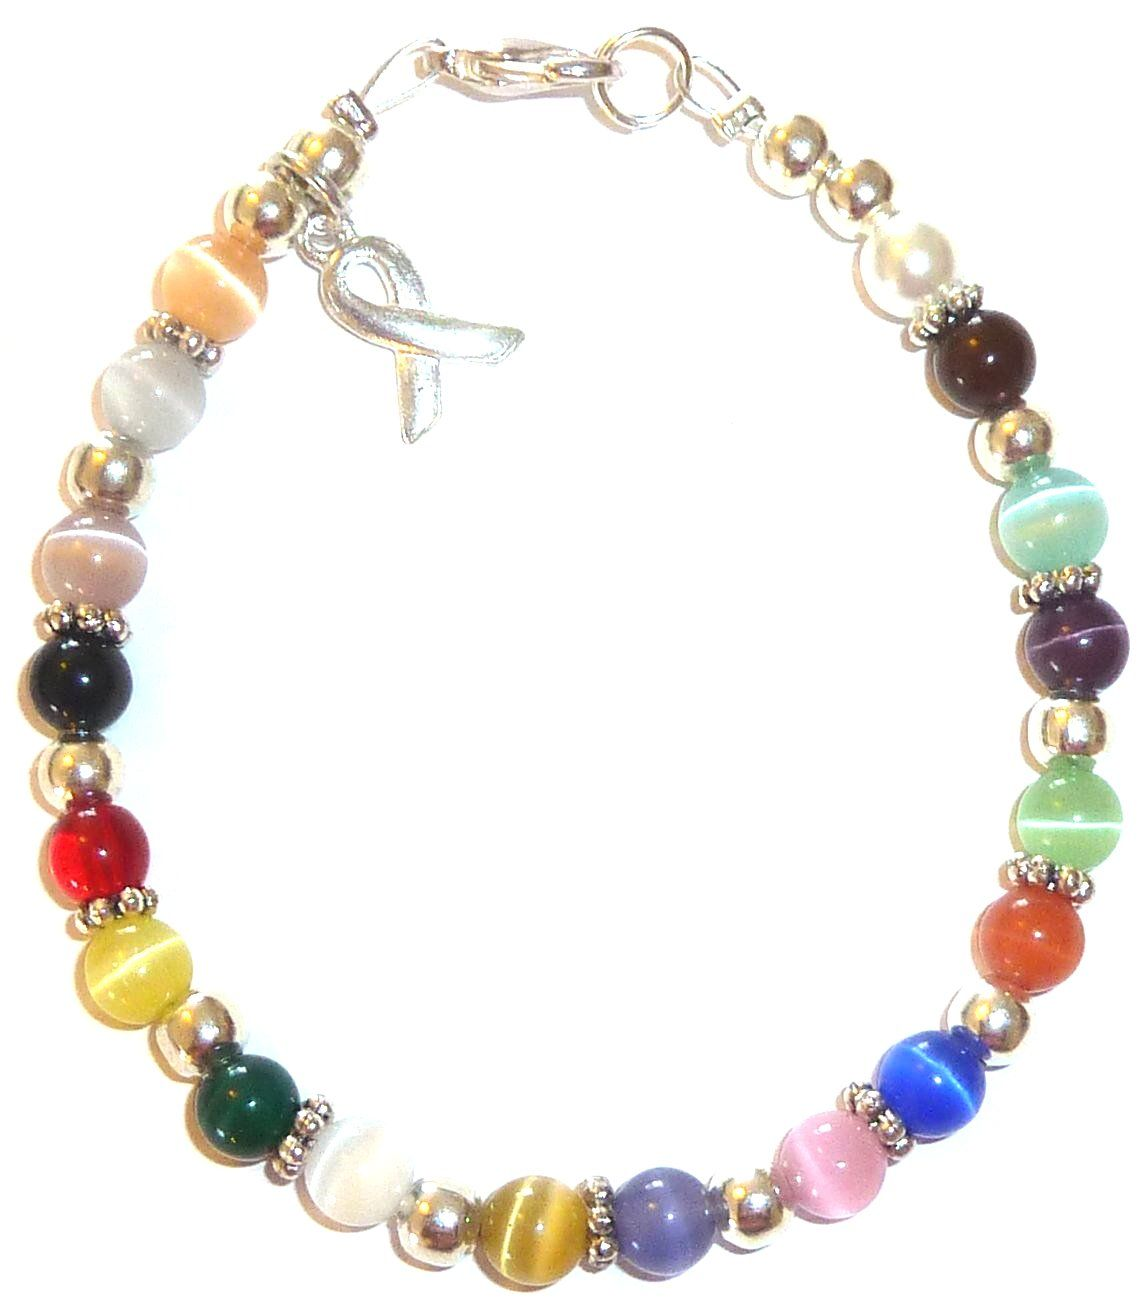 nursing gift idea - cancer awareness bracelet